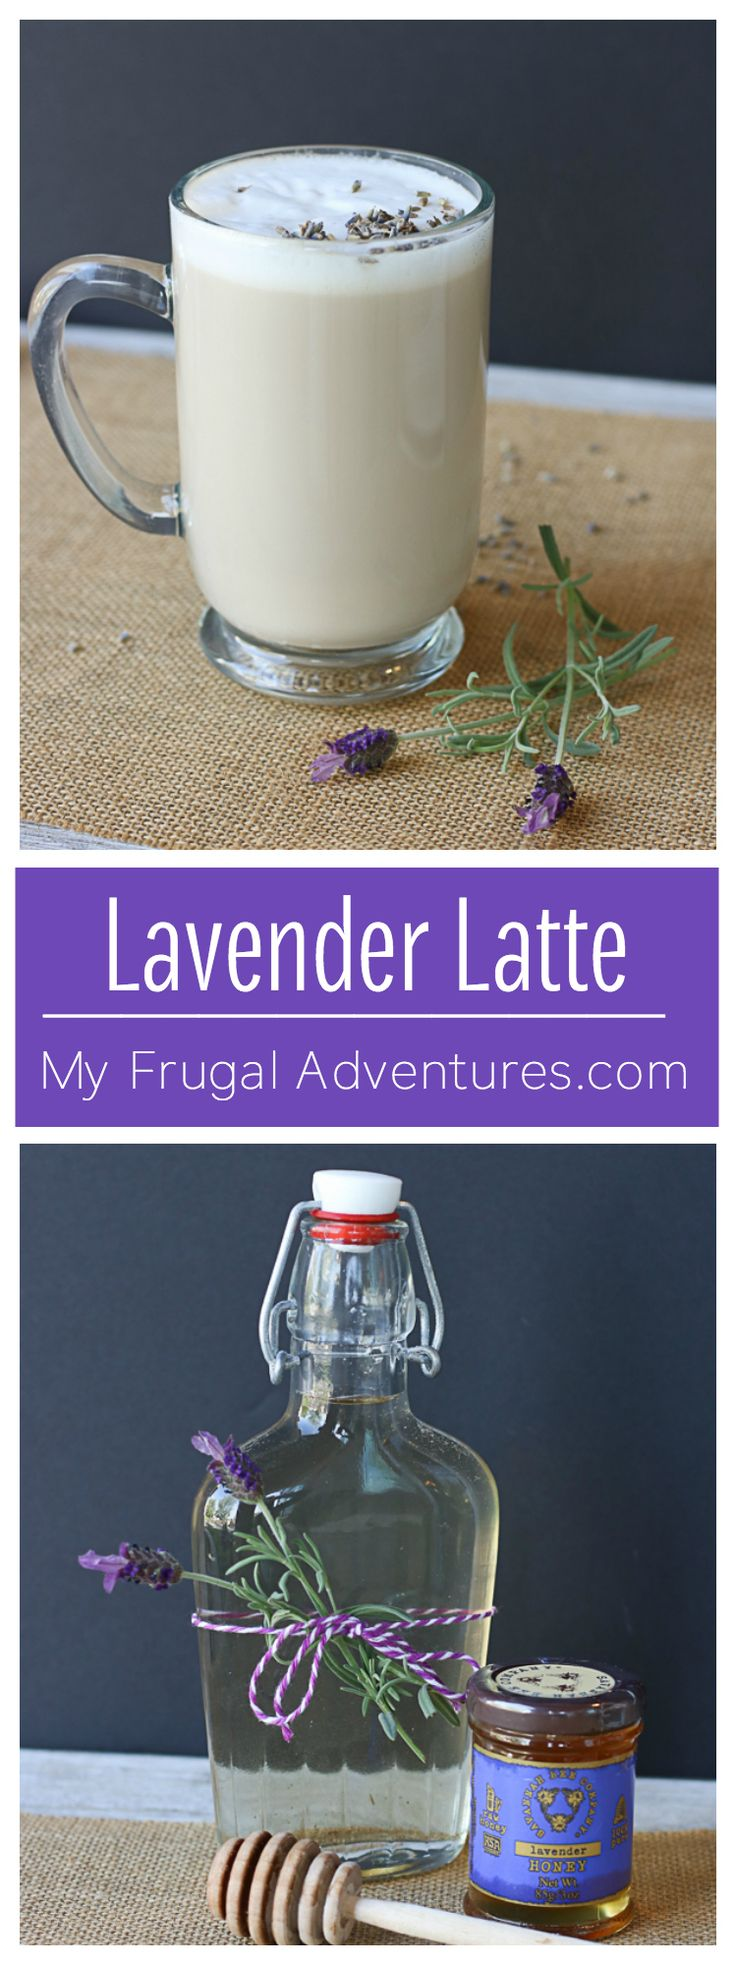 Simple and delicious lavender latte recipe.  So comforting and a perfect homemade gift idea!